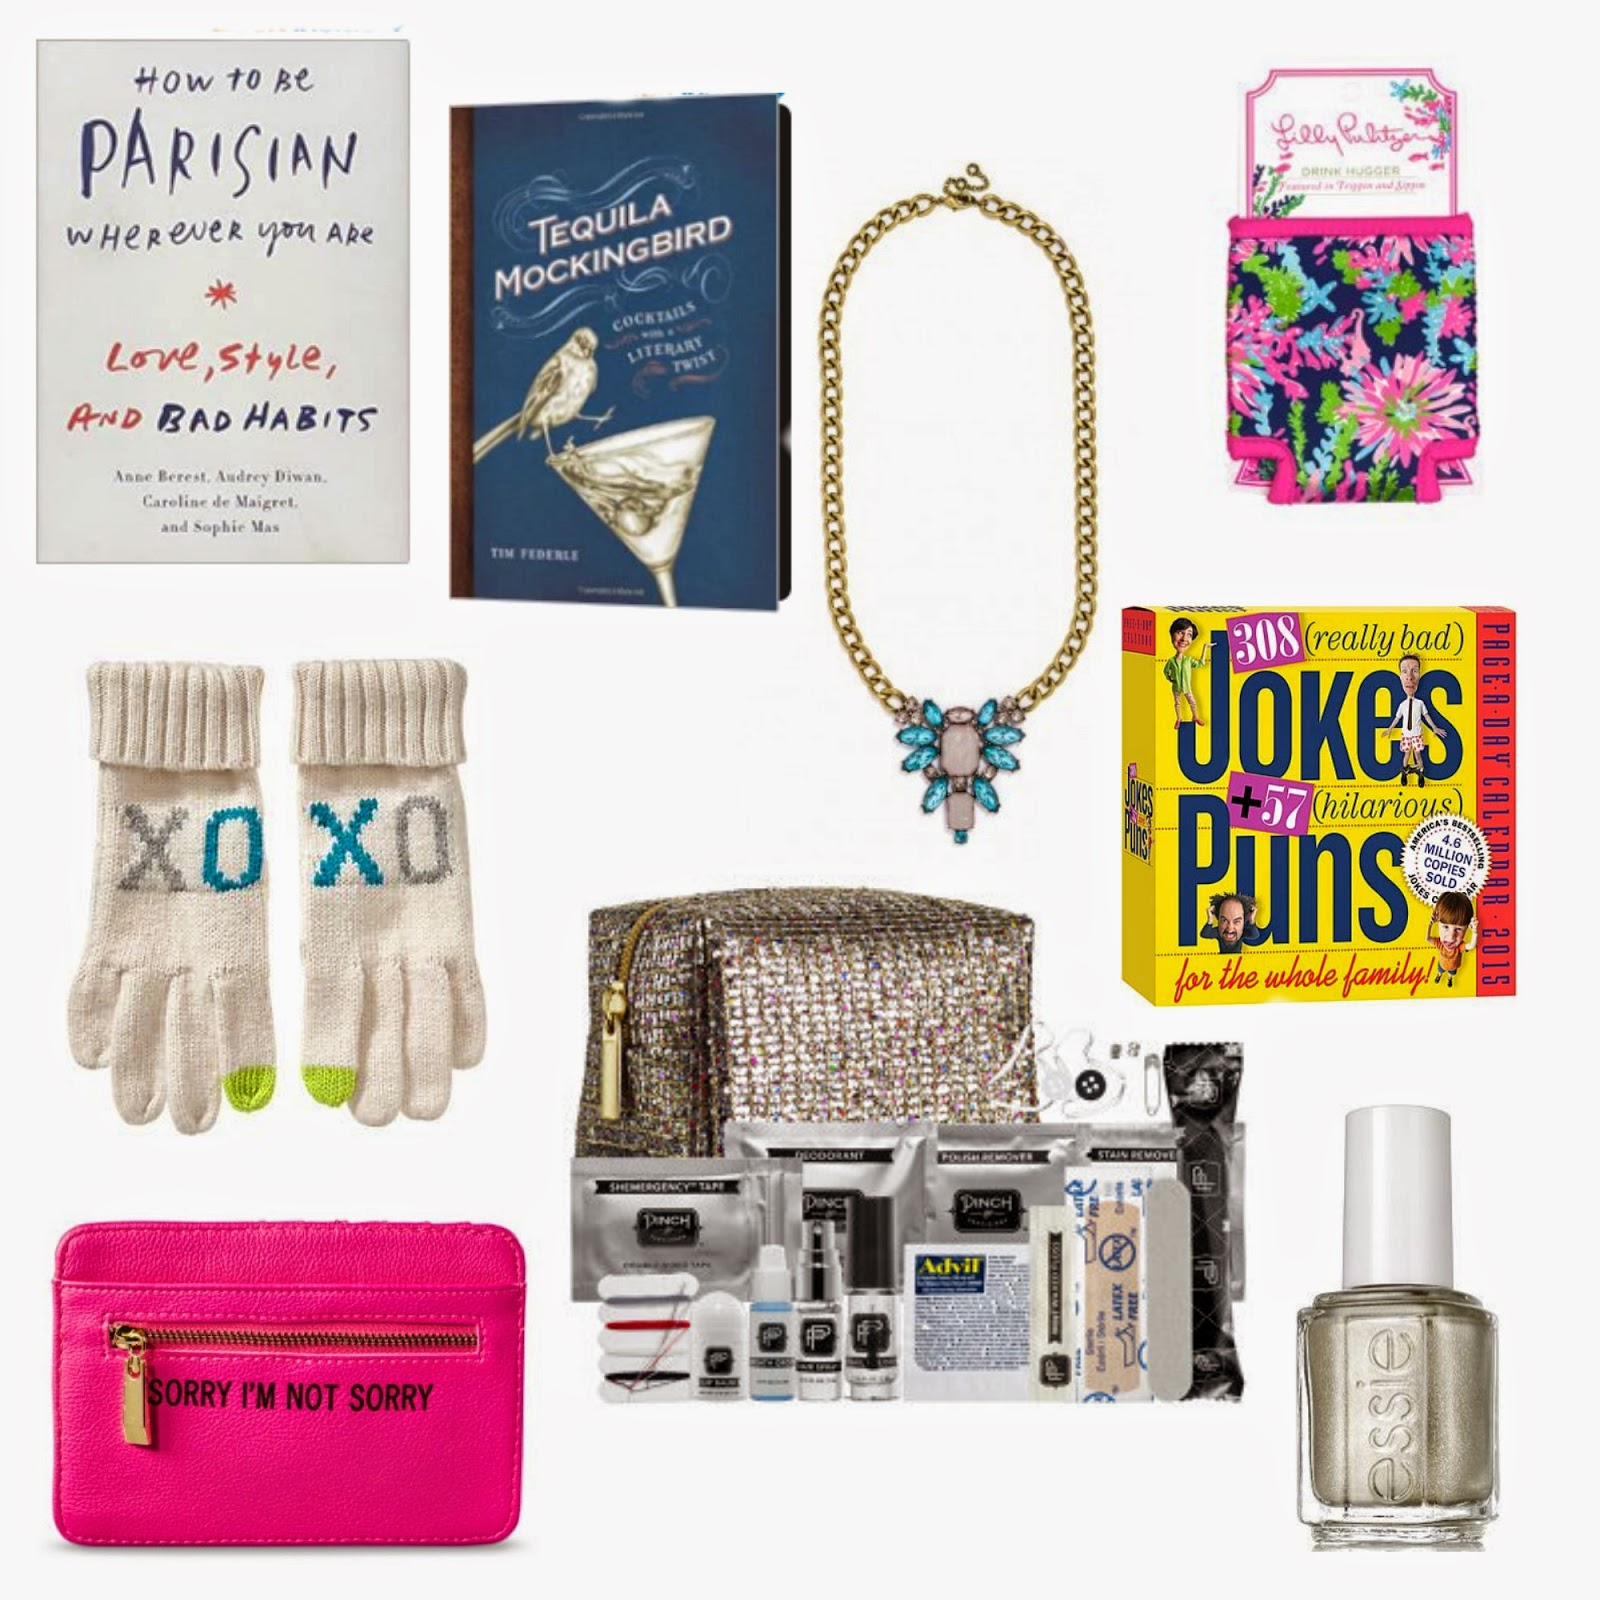 under $20 gifts, stocking stuffers, Secret Santa gifts, Office Christmas party, Gift Guide